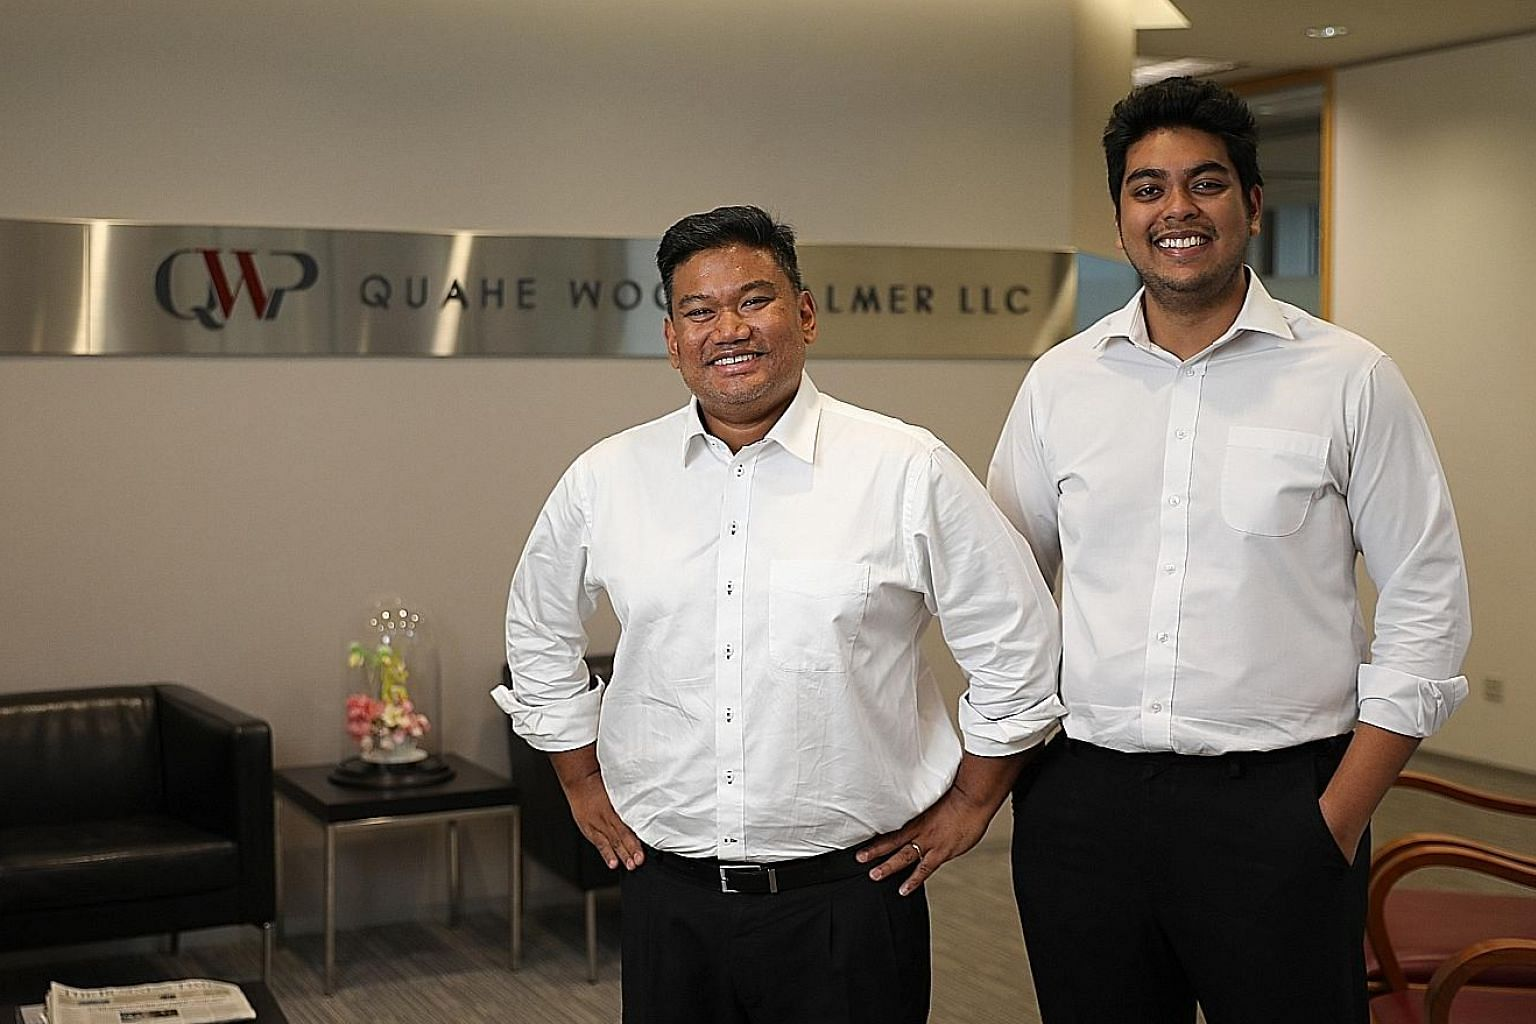 Mr Subhas Anandan (centre) with his nephew Sunil Sudheesan and lawyer Diana Ngiam at law firm RHTLaw Taylor Wessing in November 2014. Mr Sujesh Anandan (right), son of the late top criminal lawyer Subhas Anandan, is working with Mr Sunil Sudheesan at